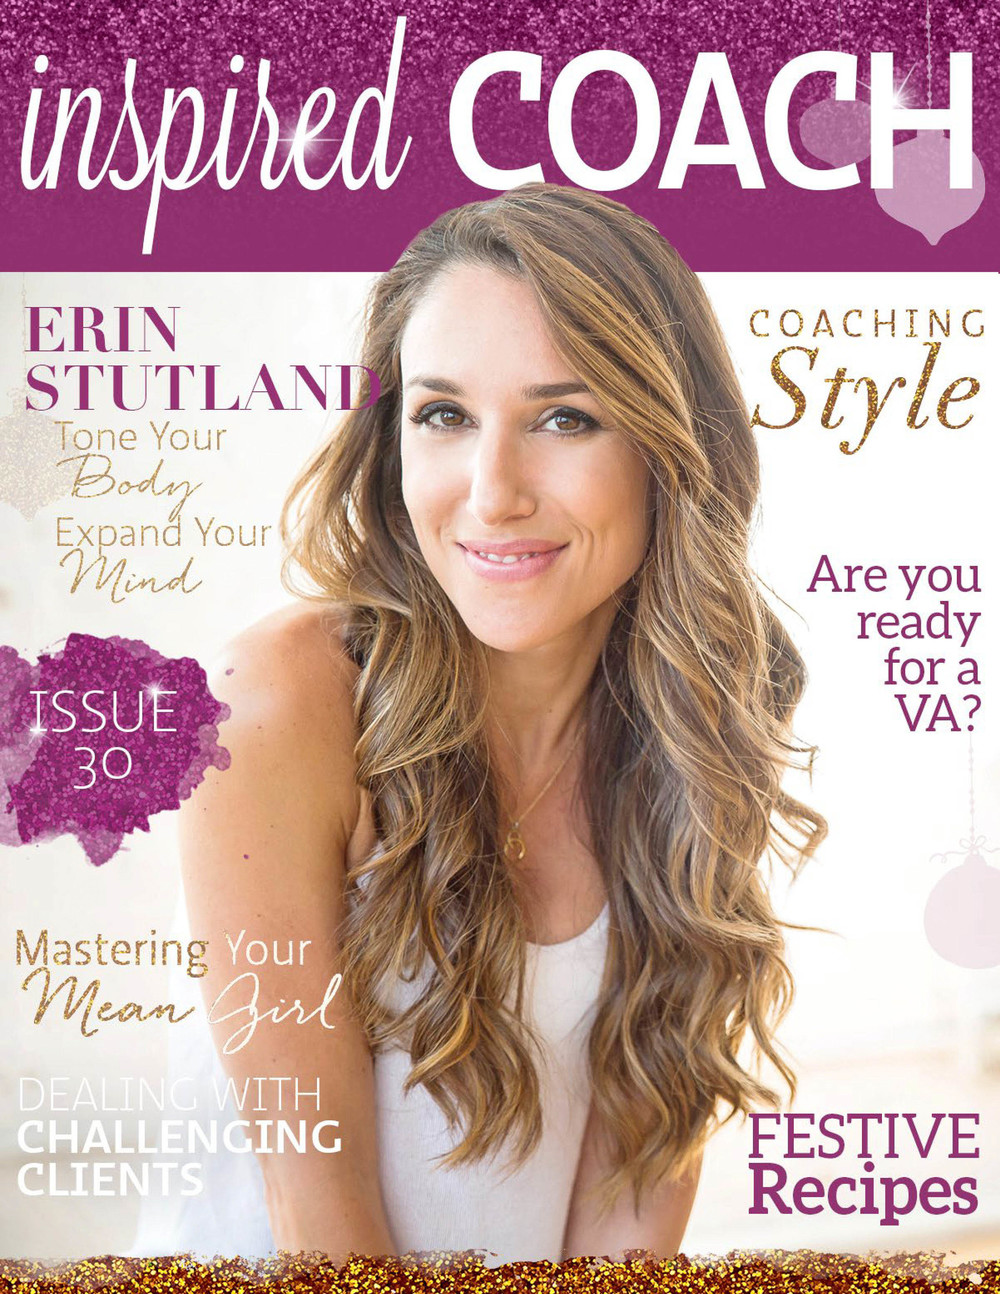 inspired COACH_Issue30_ERIN STUTLAND-Cover.jpg